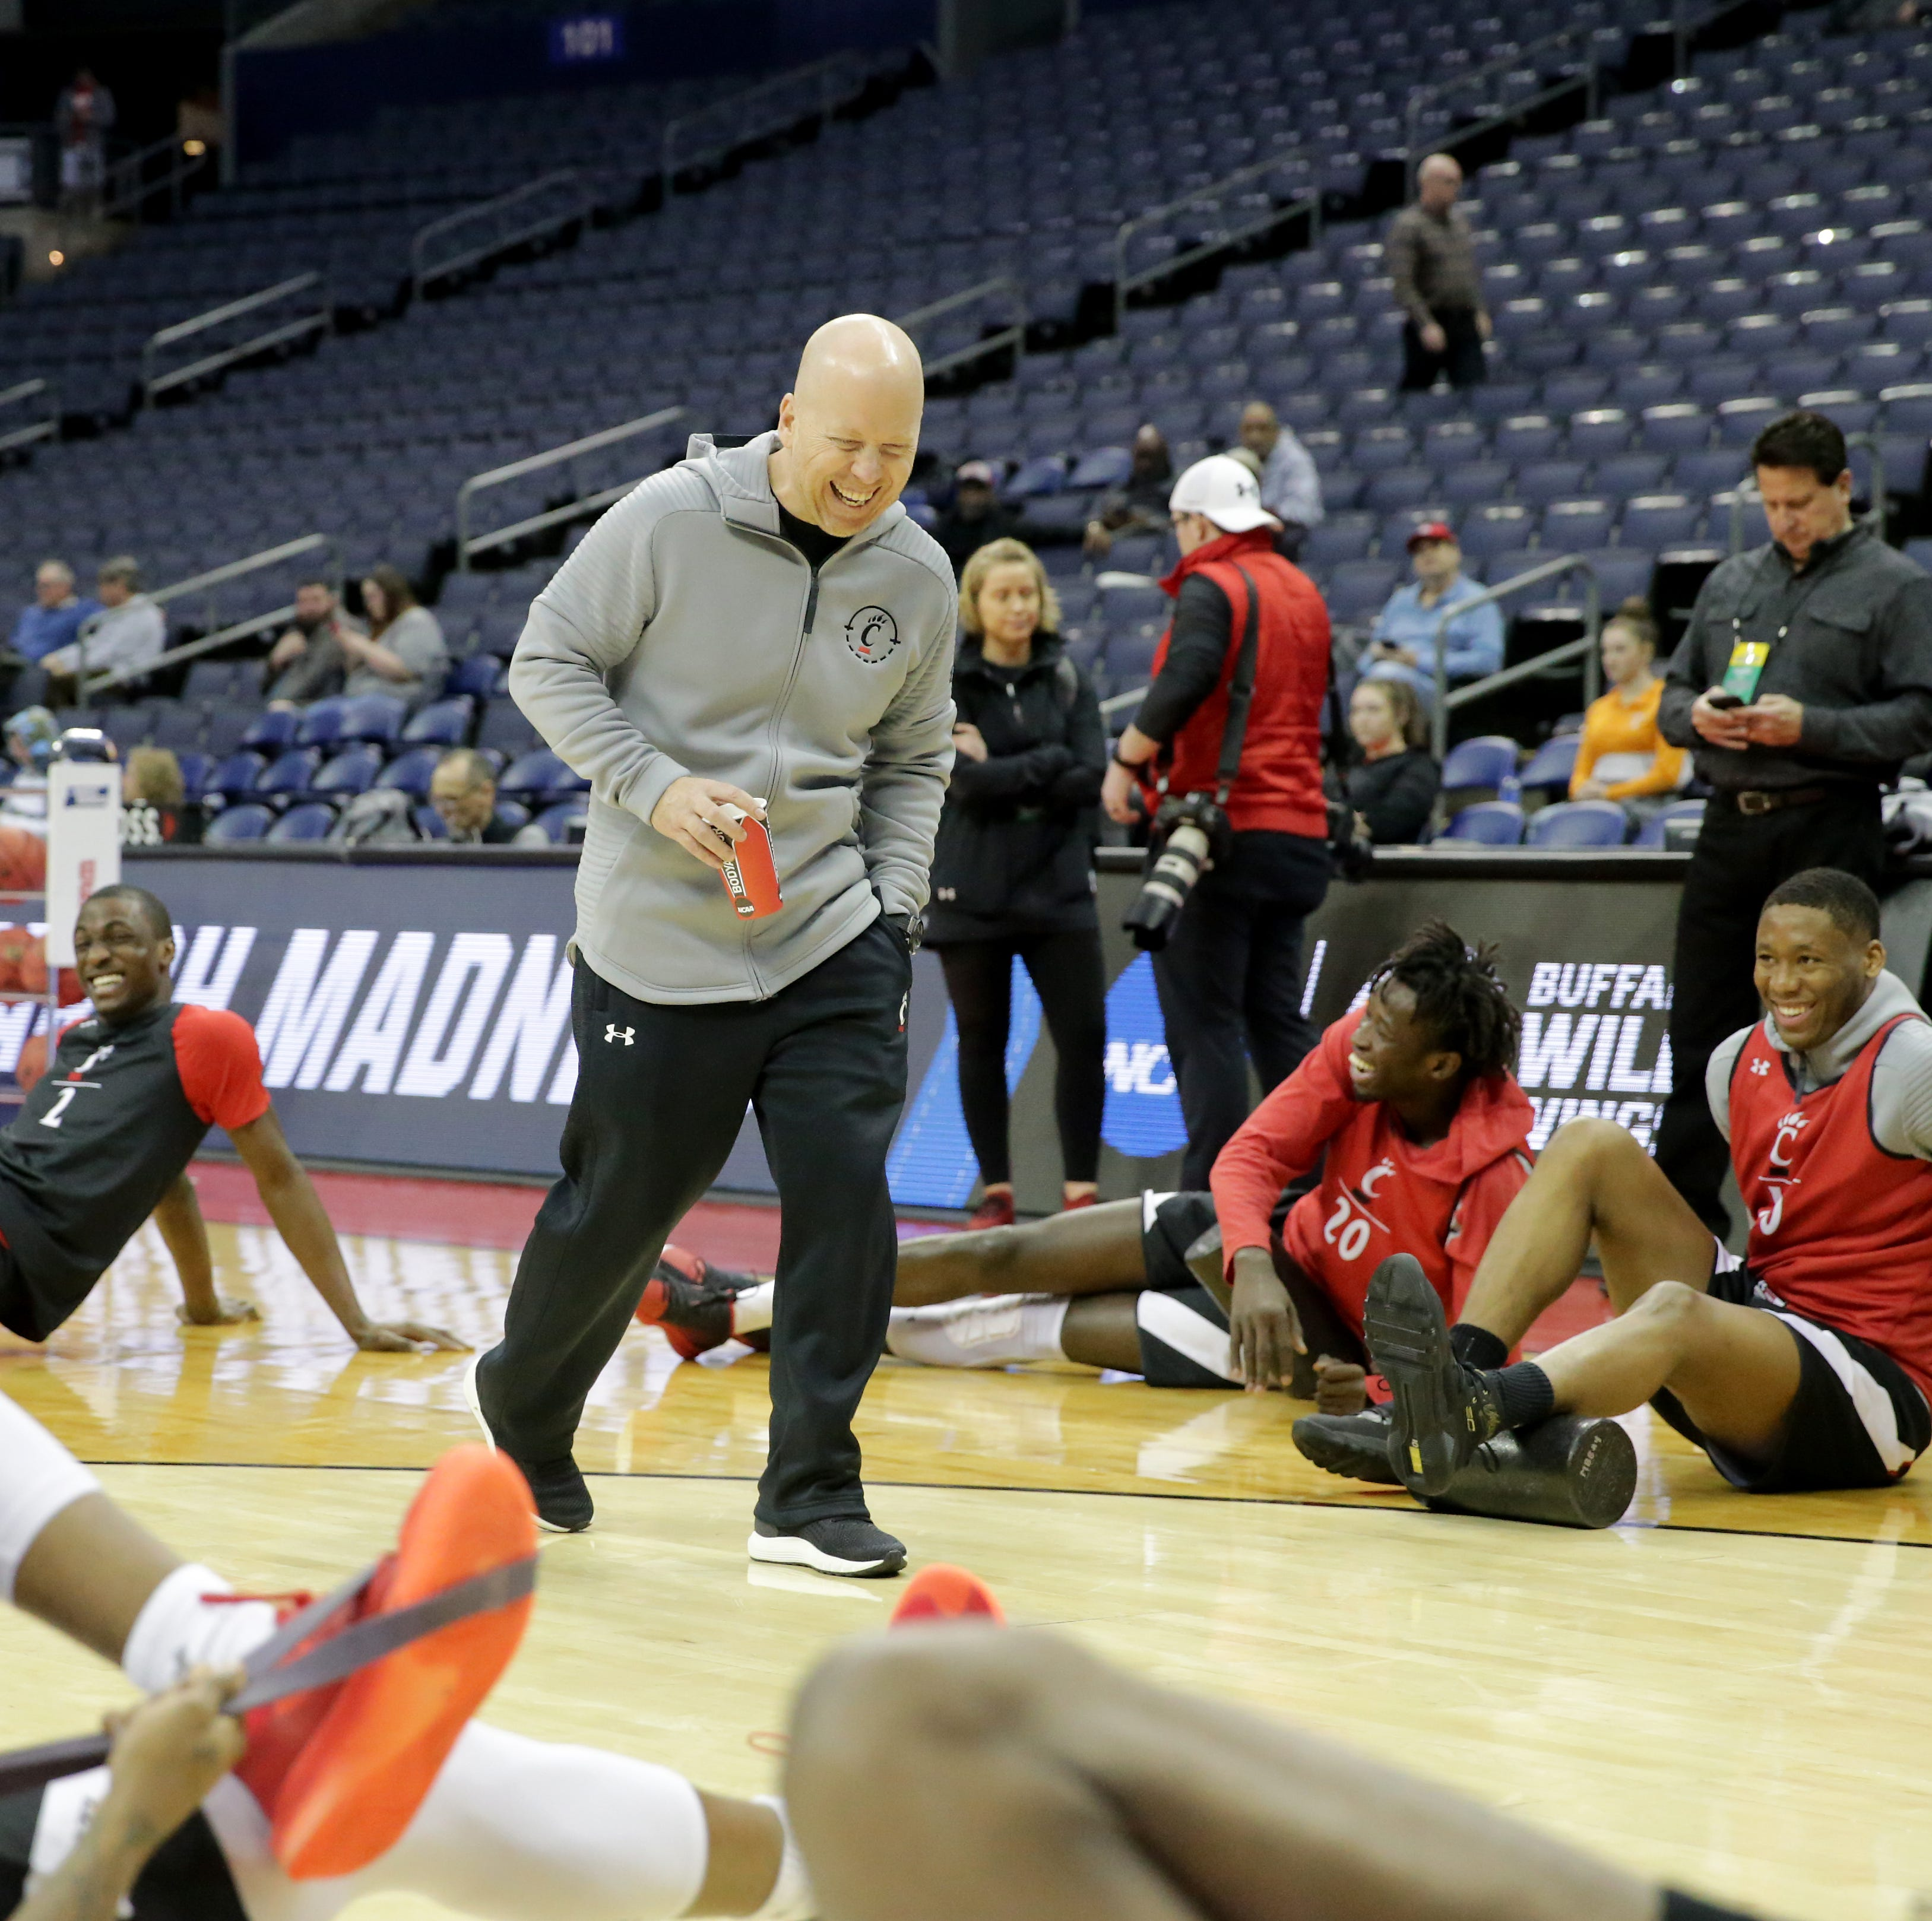 Doc's Morning Line: You're crazy if you want Mick Cronin fired. Here's what UC needs to do.